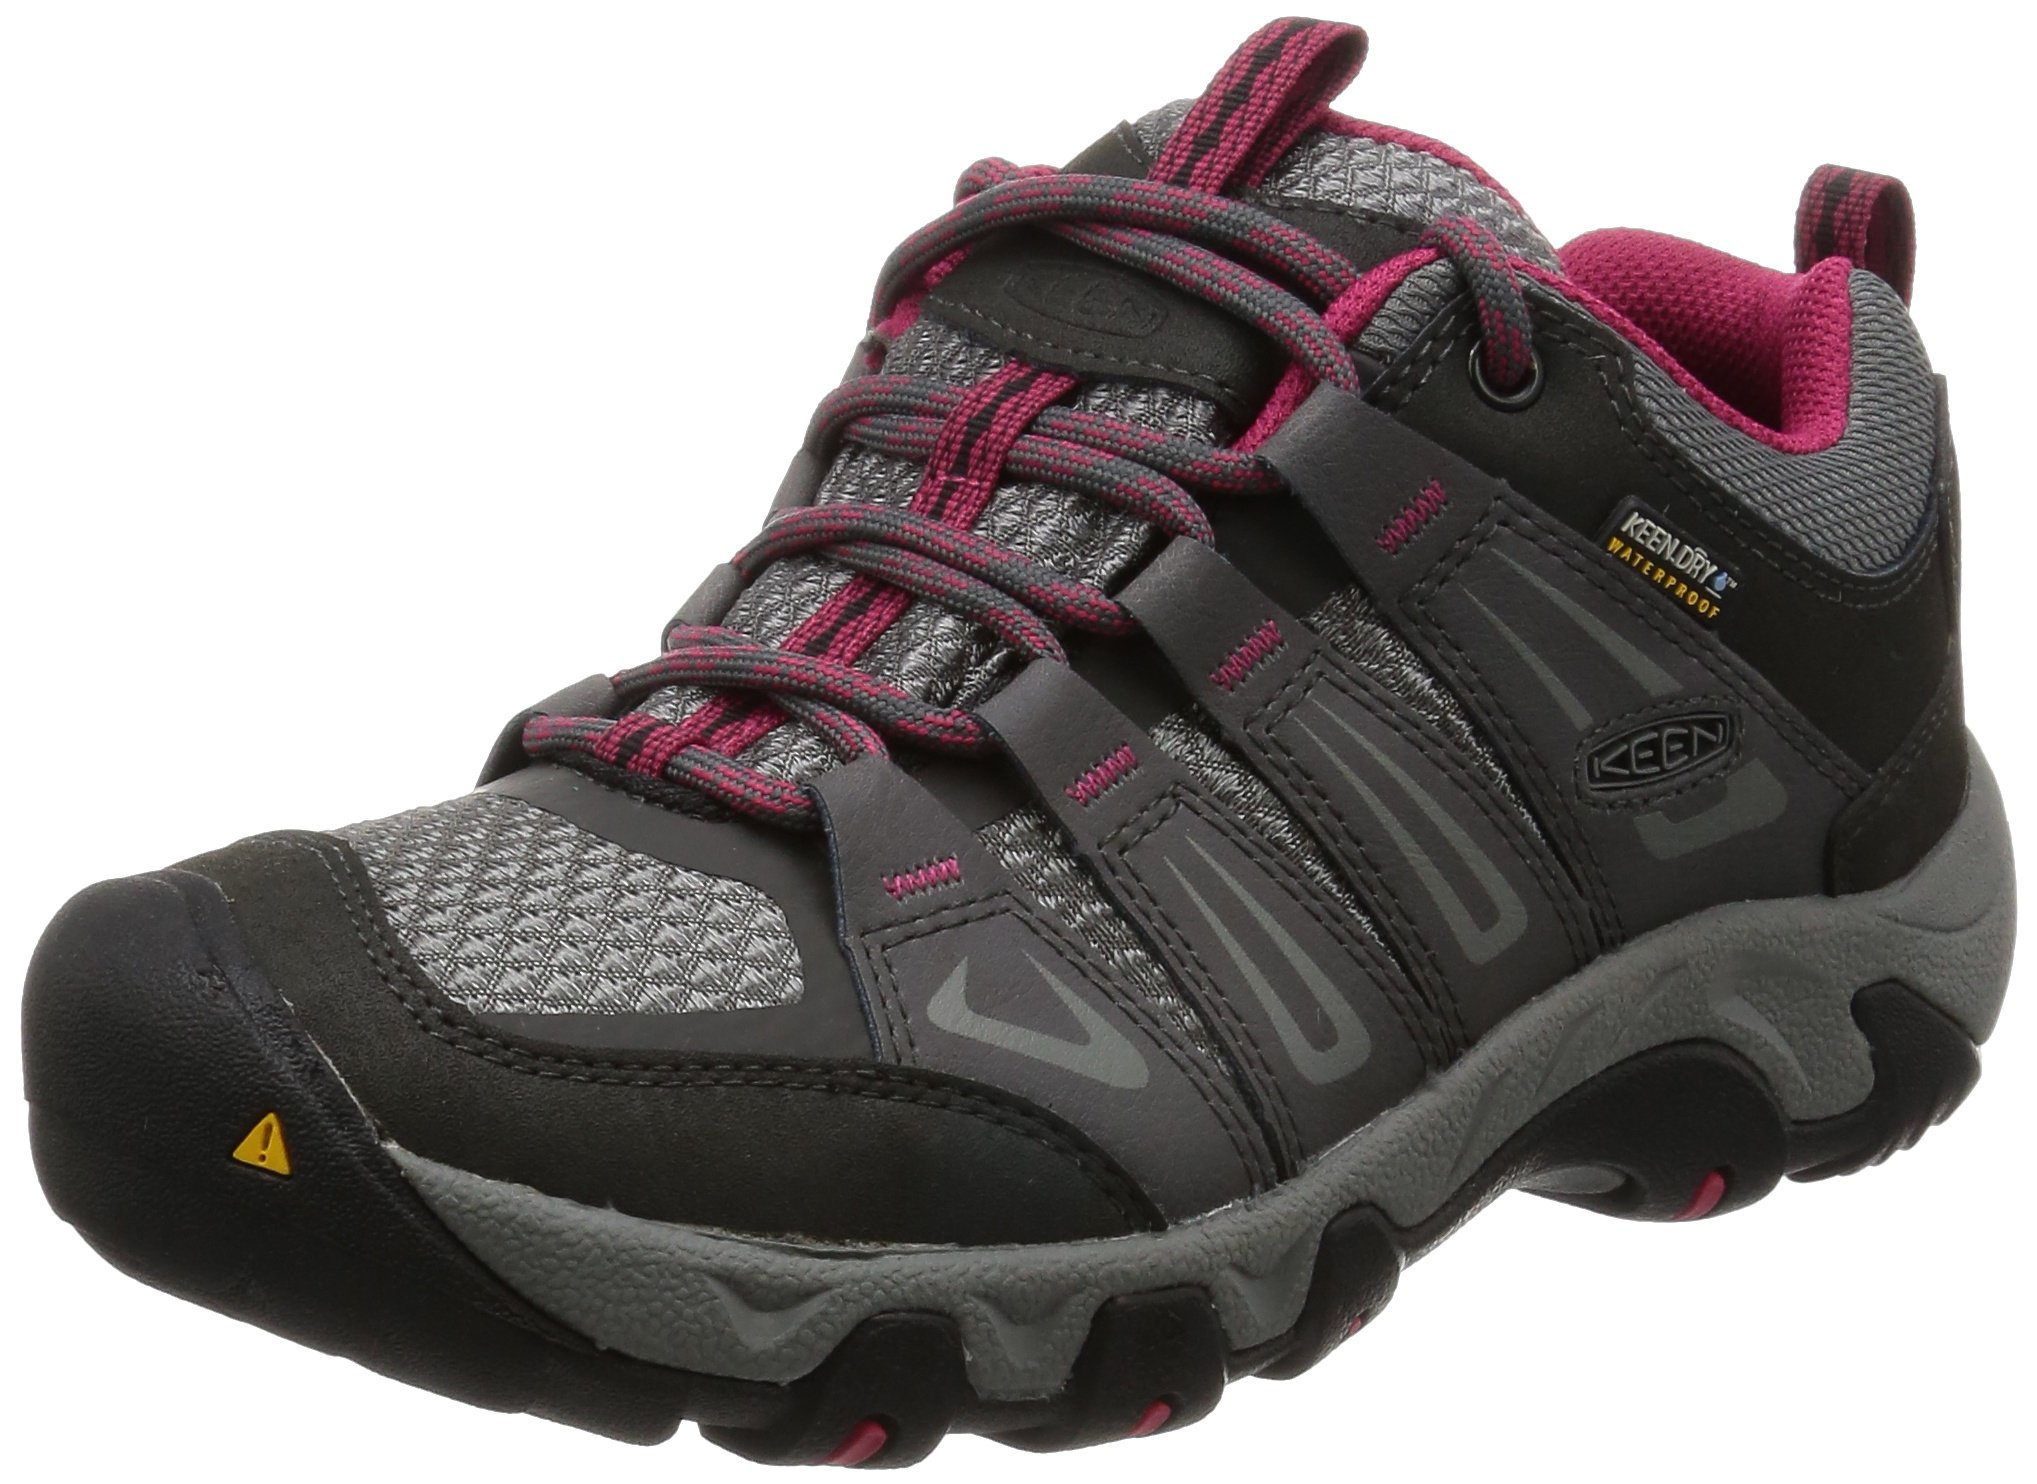 KEEN Women's Oakridge Waterproof Shoe, Magnet/Rose, 9 M US by KEEN (Image #1)